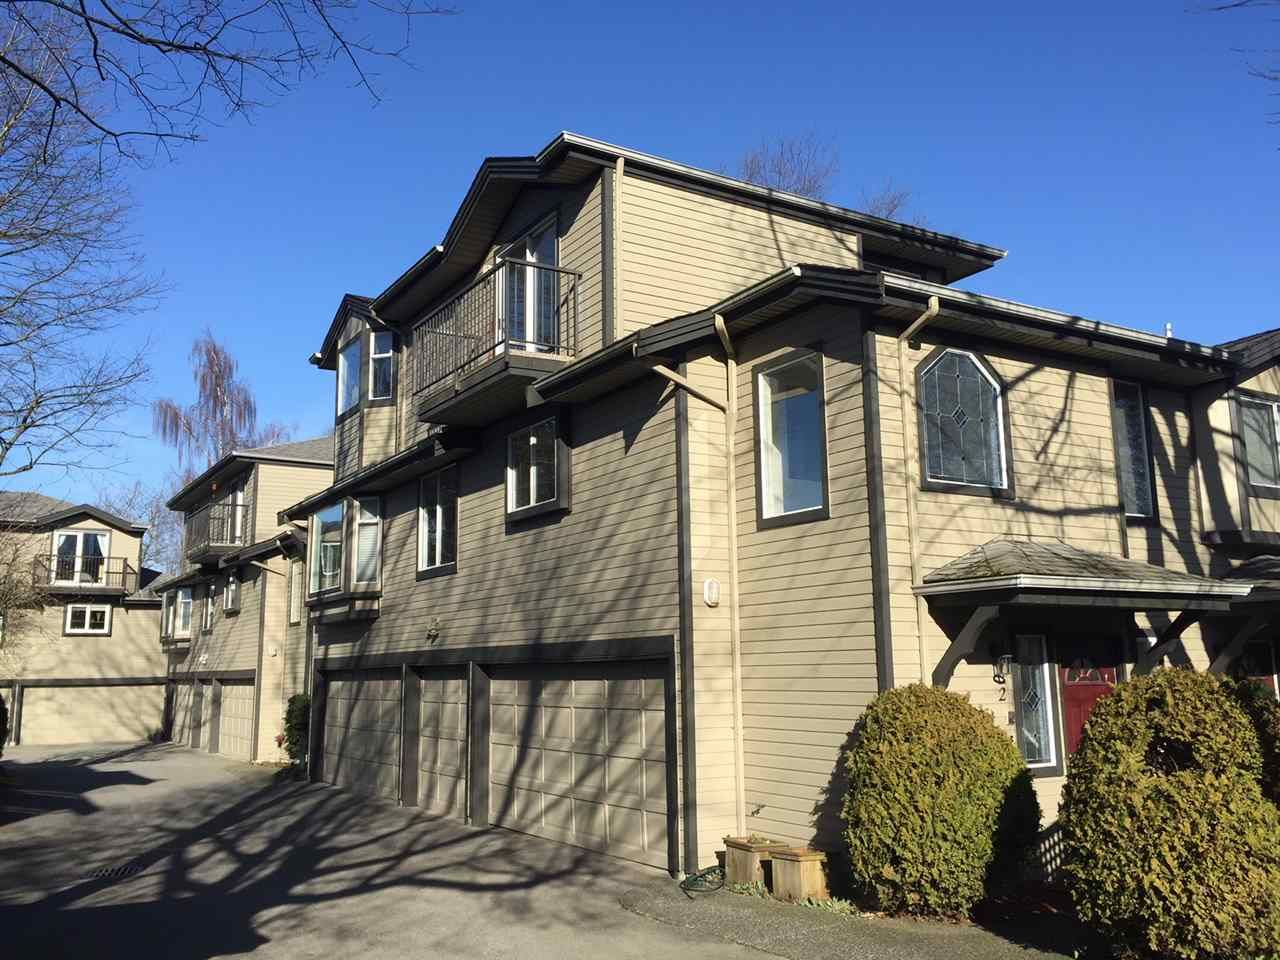 Main Photo: 2 61 E 23RD AVENUE in Vancouver: Main Townhouse for sale (Vancouver East)  : MLS®# R2225680